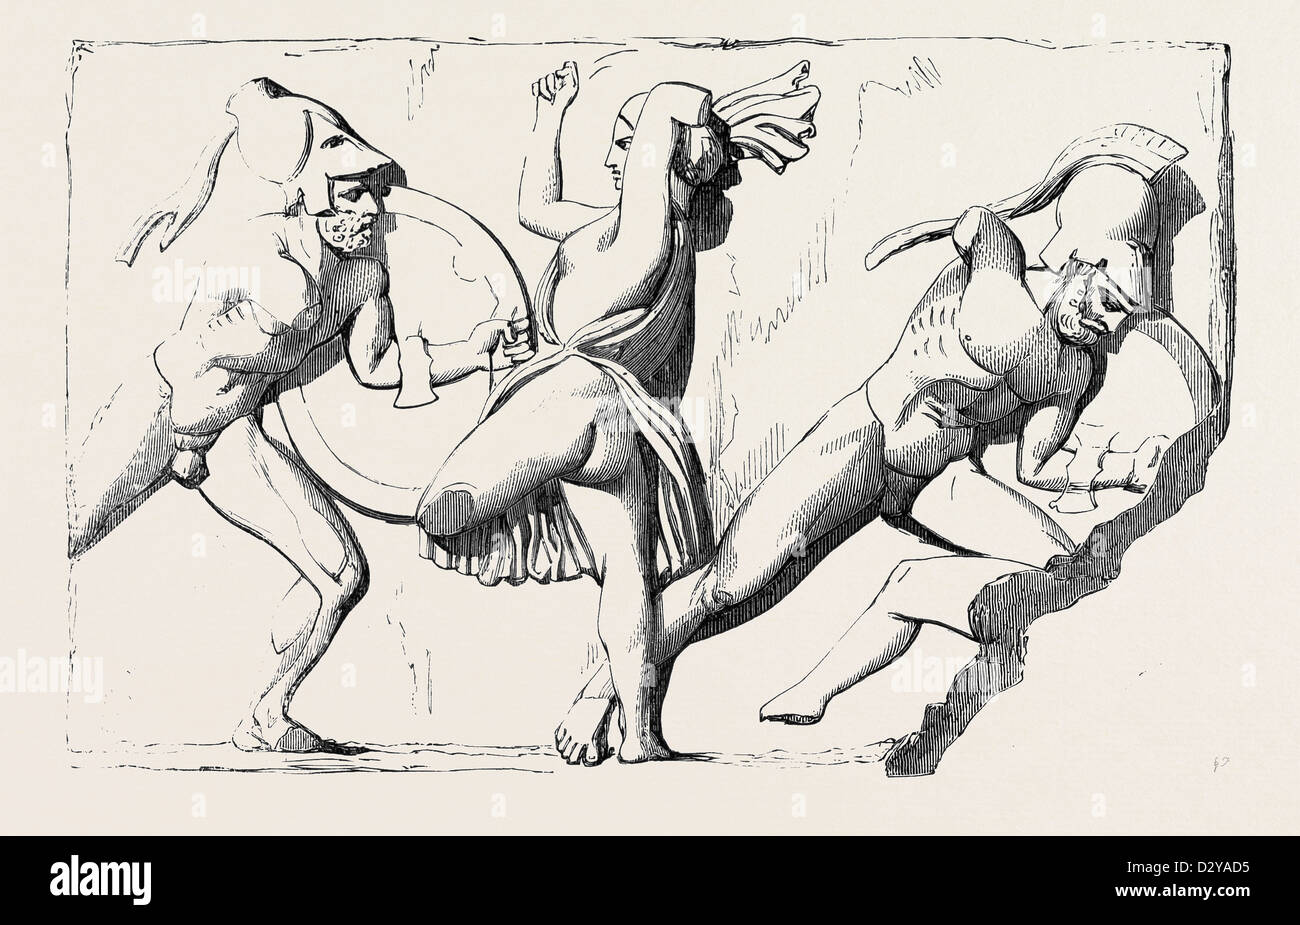 THE BOUDROUM MARBLES: NO. 3. PART OF A FRIEZE REPRESENTING A BATTLE BETWEEN THE AMAZONS AND THE GREEKS - Stock Image